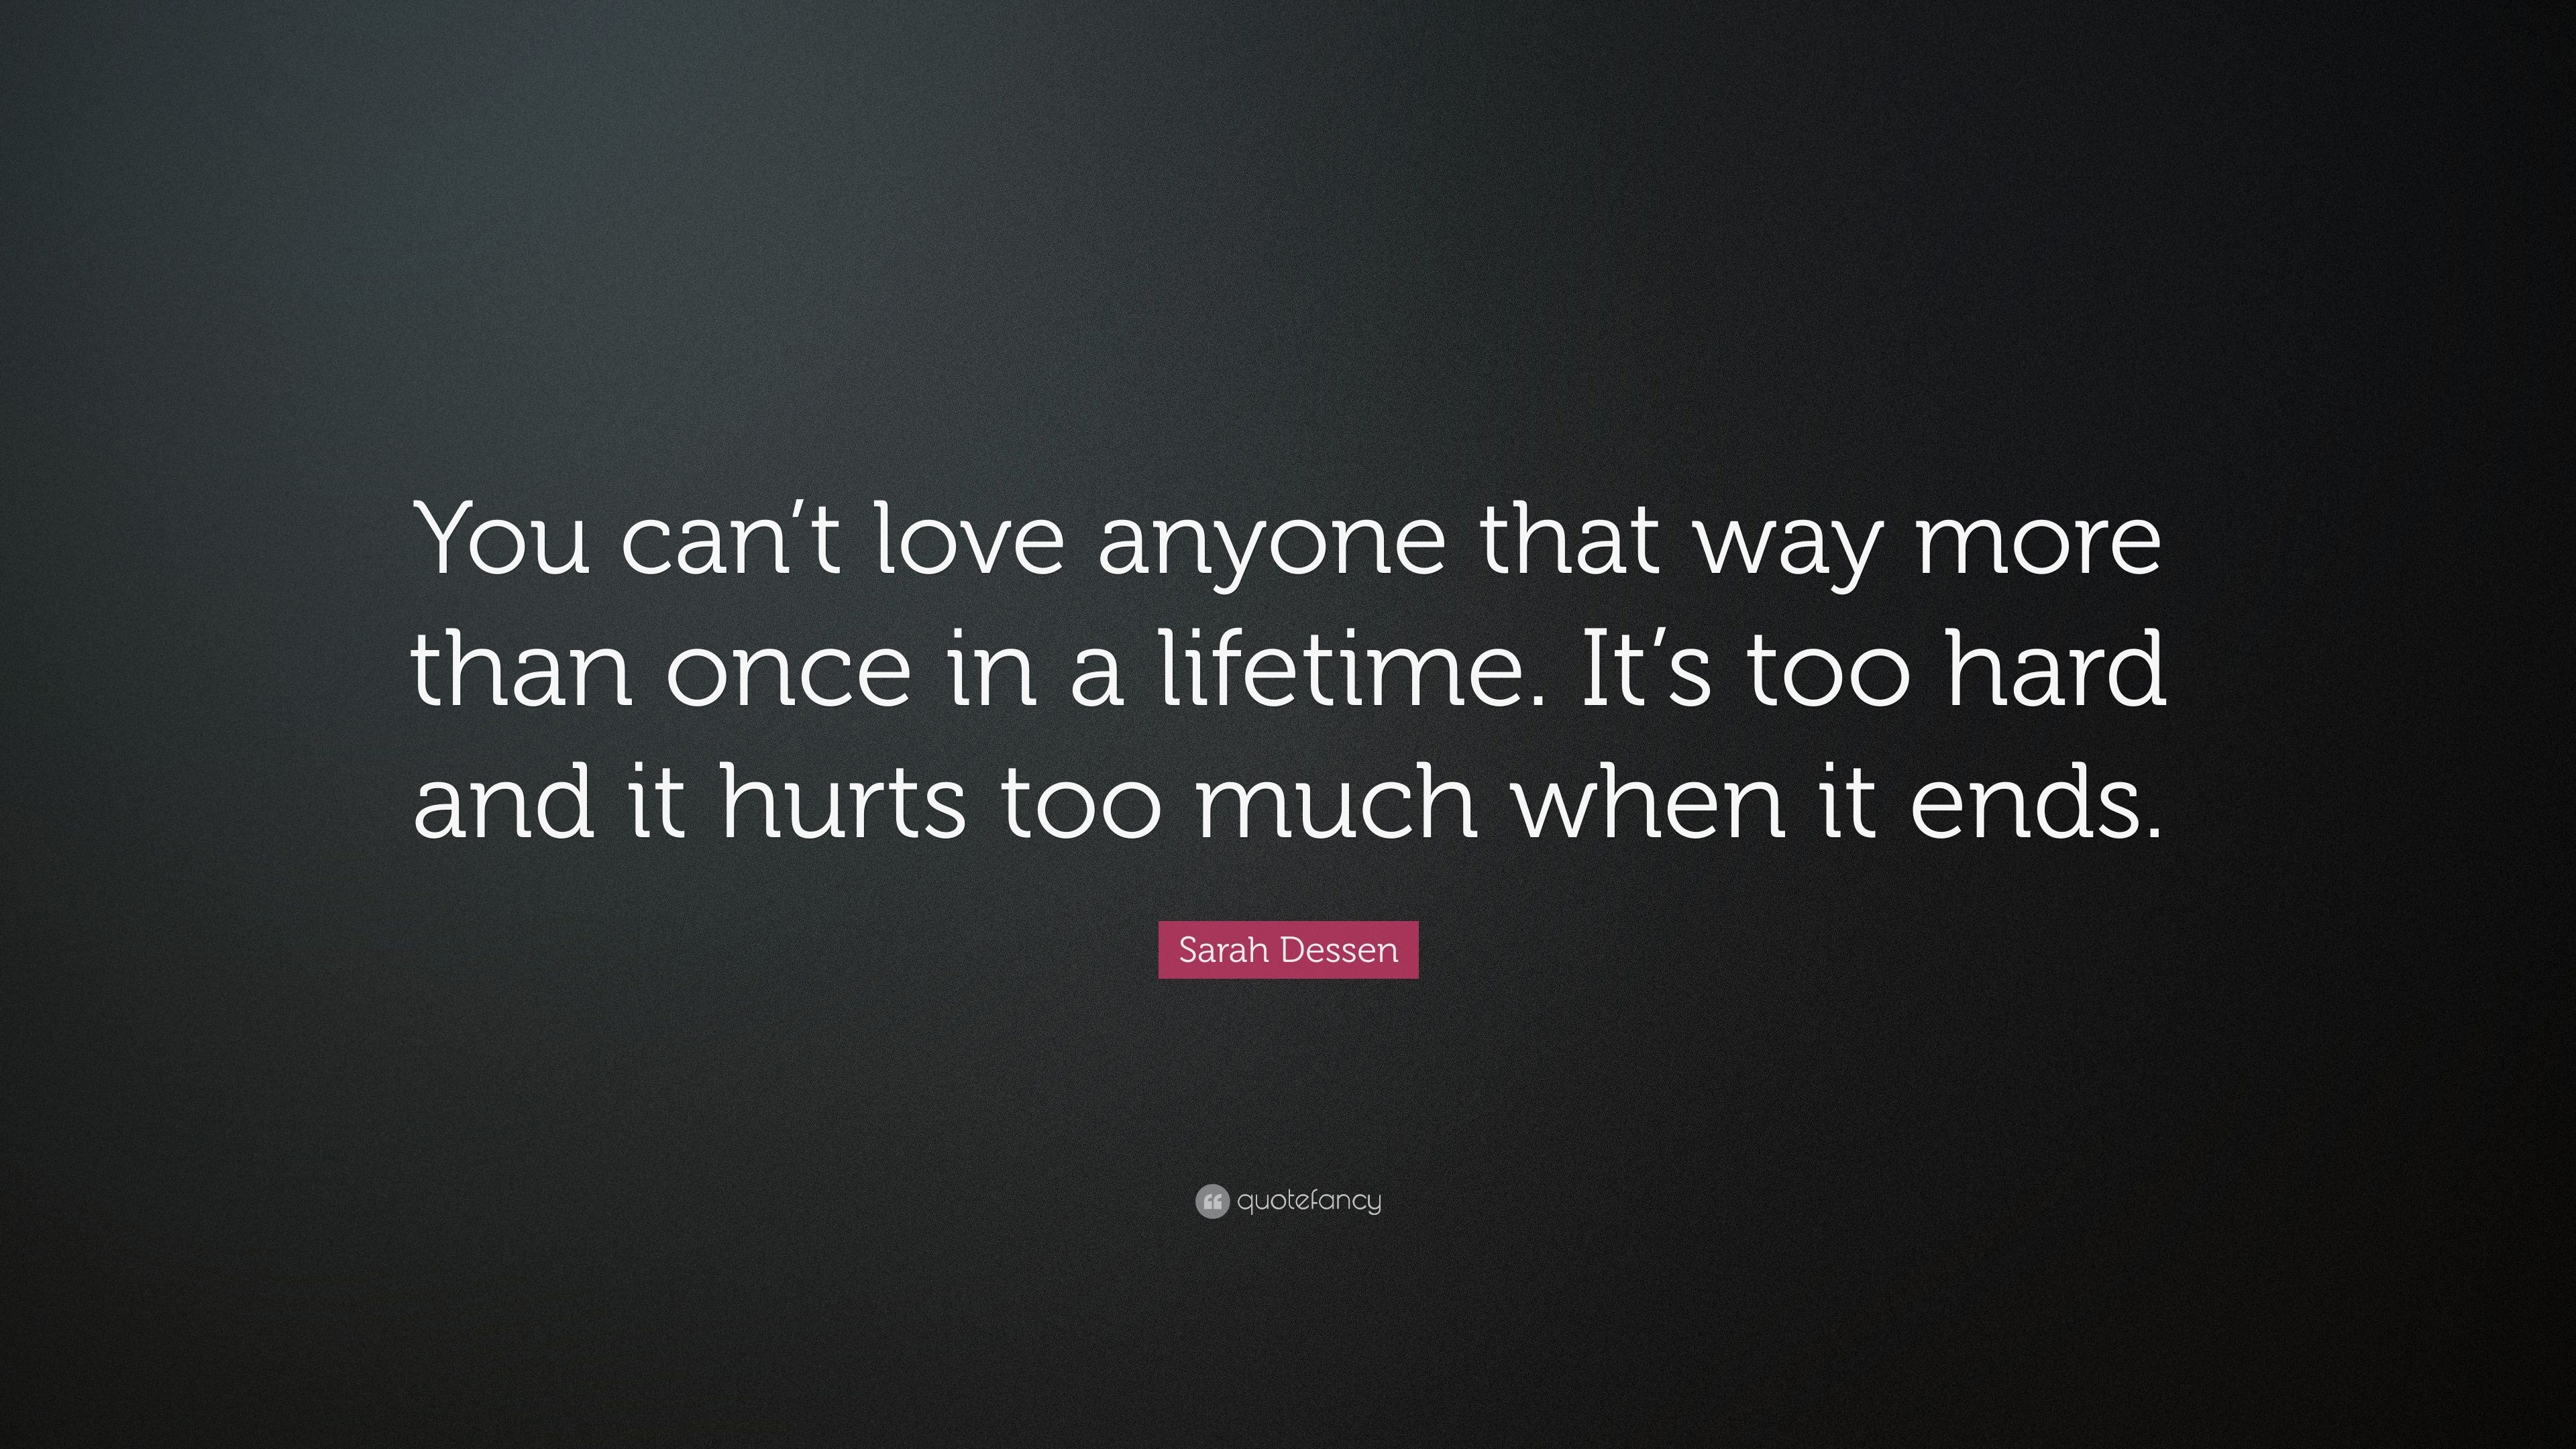 Sarah Dessen Quote You Cant Love Anyone That Way More Than Once